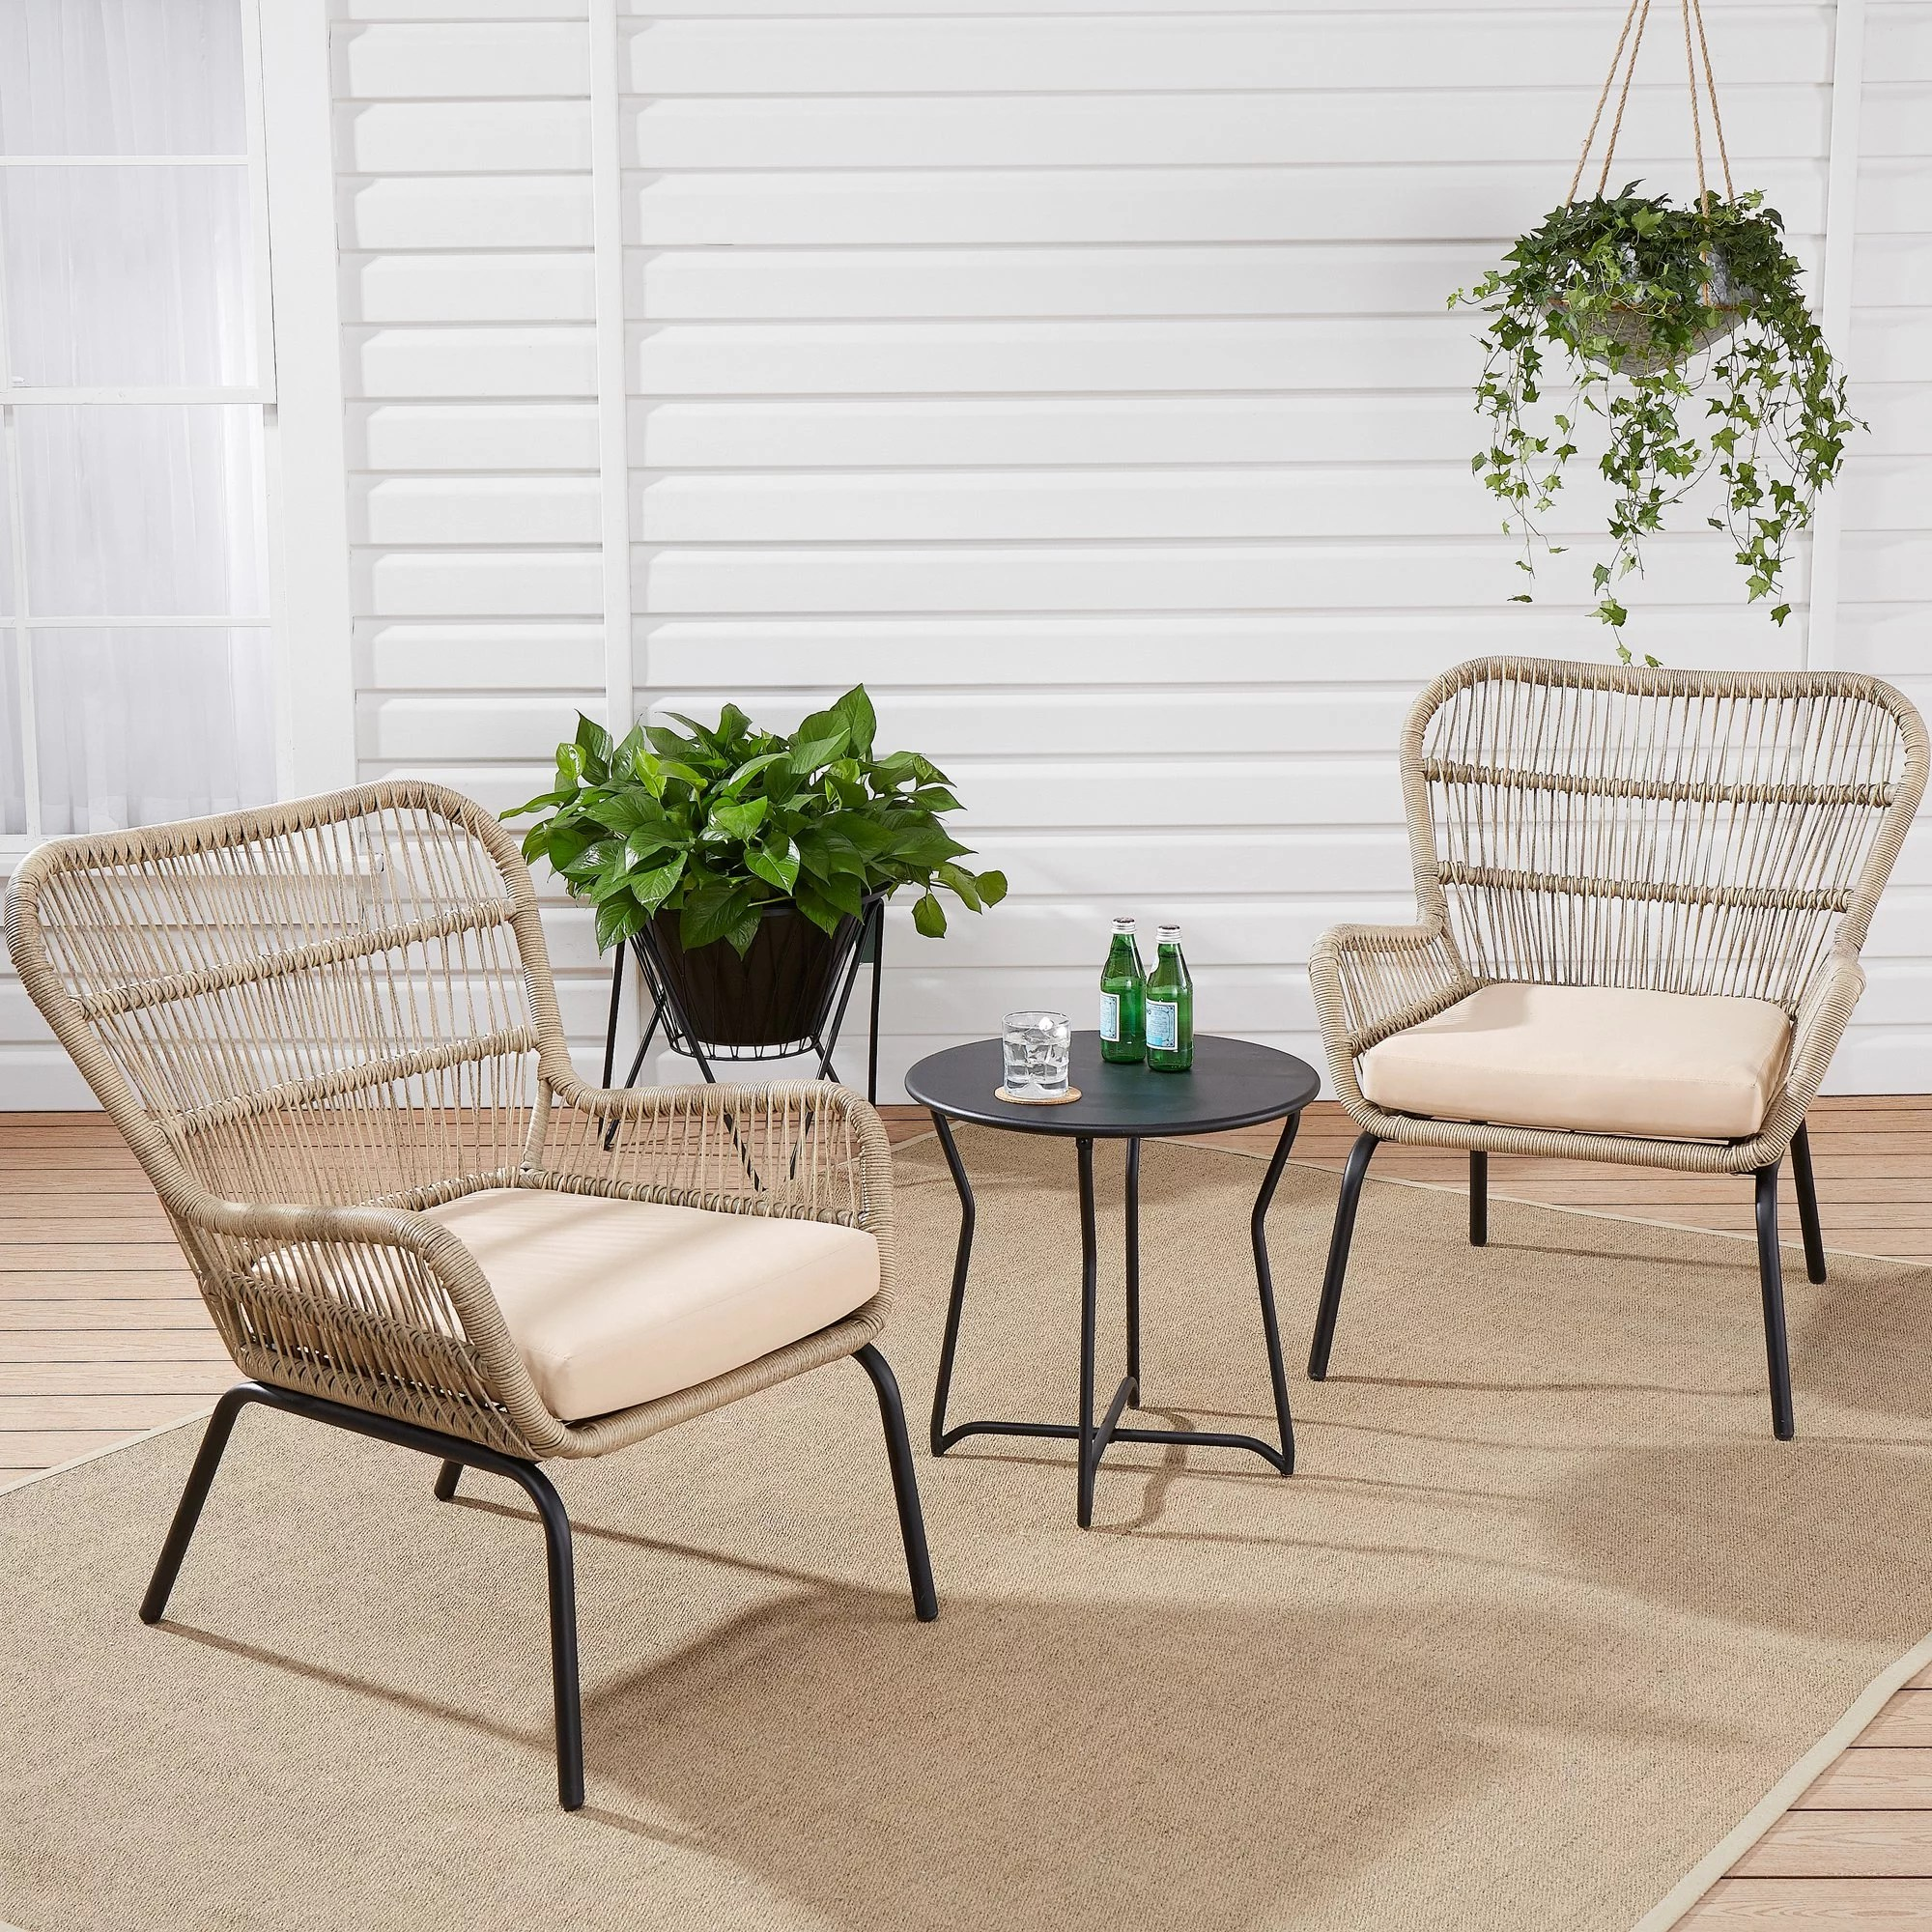 Muebles De Madera En Walmart Walmart Better Homes And Gardens Patio Furniture